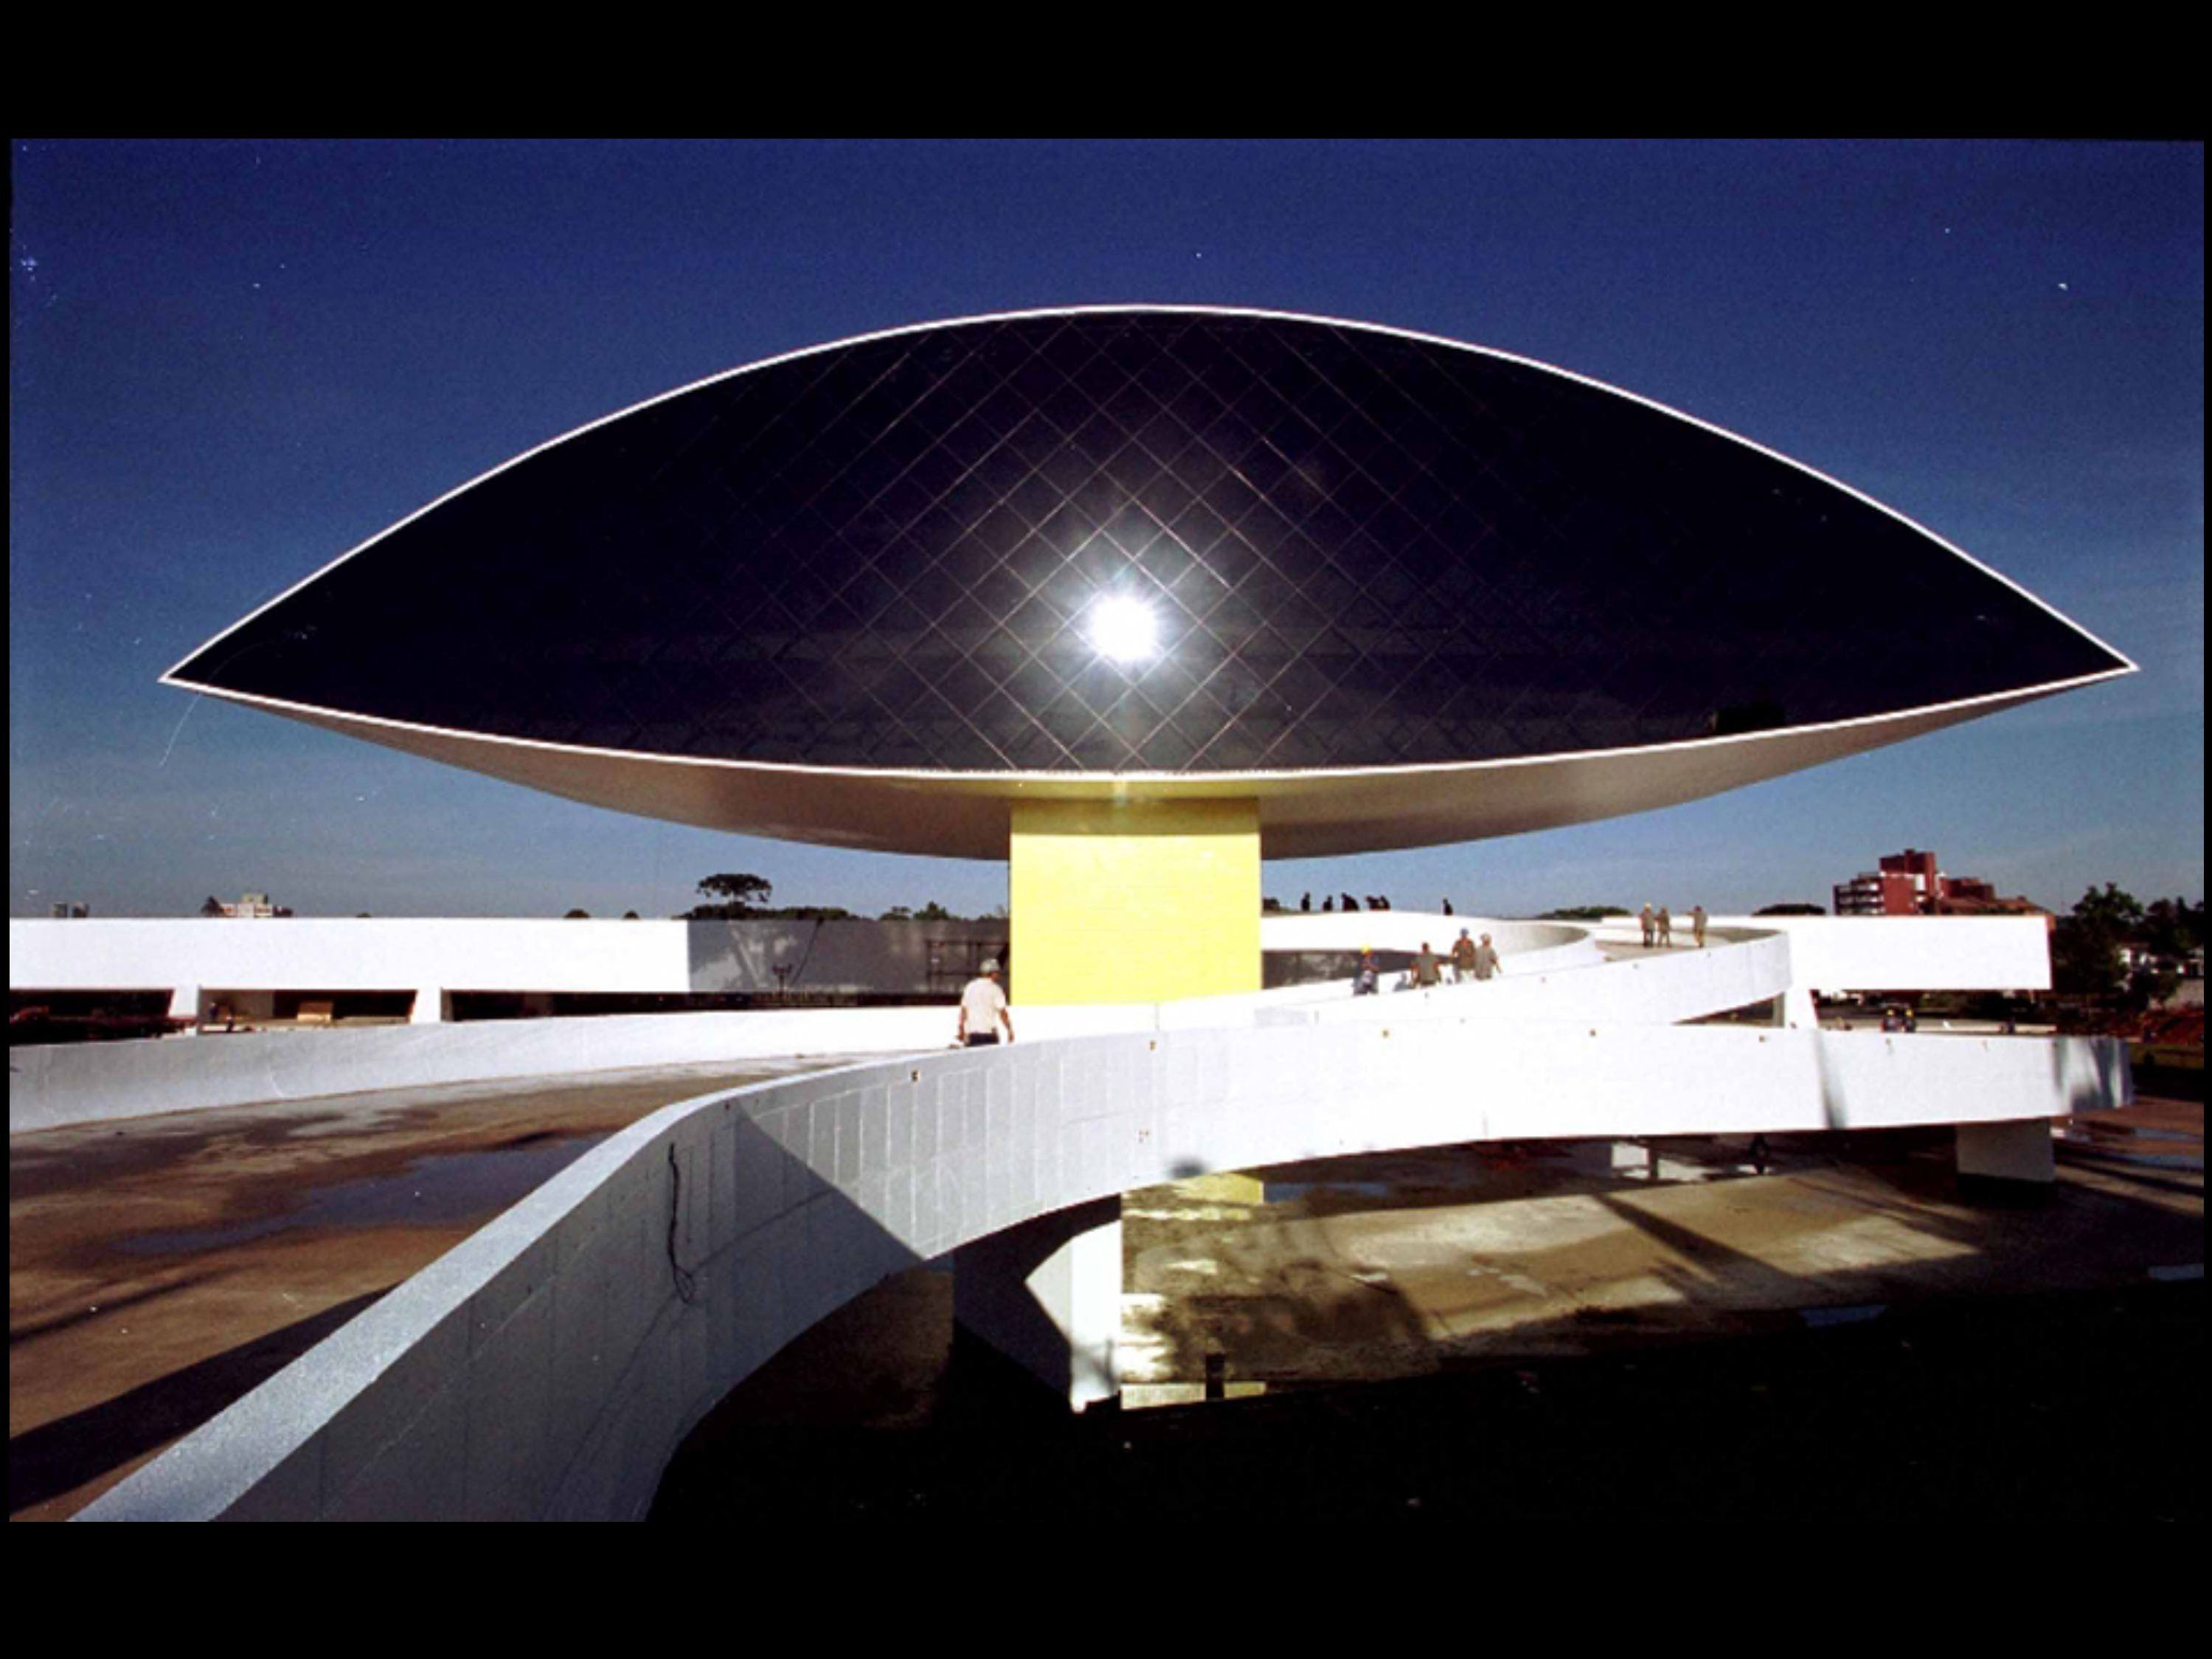 Pro513 likewise Normal 0 21 False False False Es Mx X in addition Raising R as well 308171 Oscar Niemeyer Gonzalo Viramonte Palacio Do Planalto together with 427176025 Musee D'art Contemporain Niteroi Oscar Niemeyer R e. on oscar niemeyer ramps